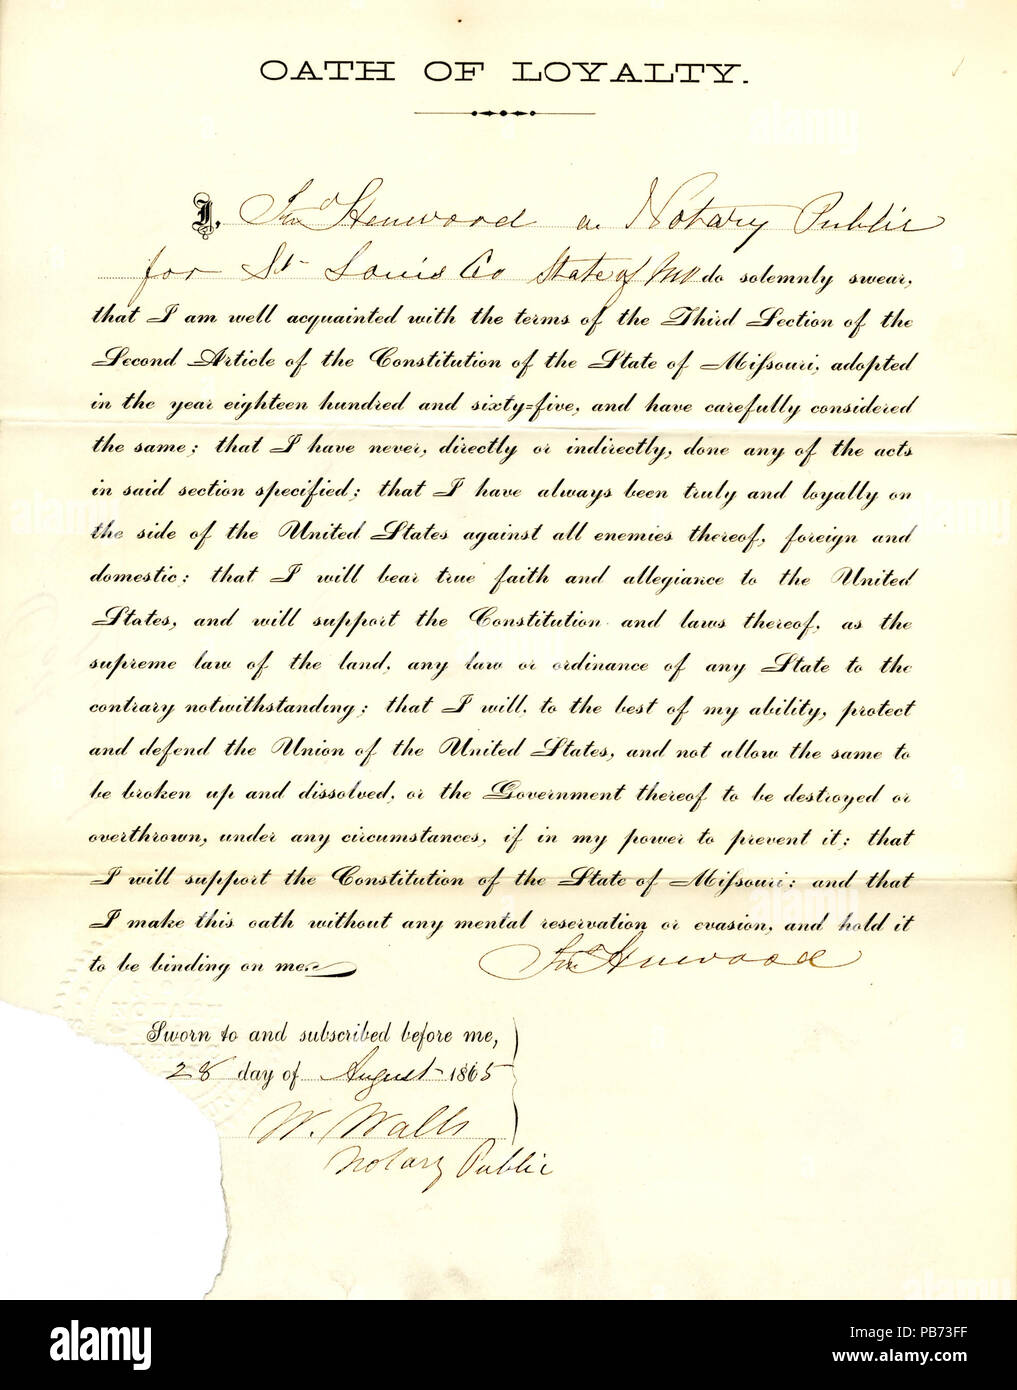 950 Loyalty oath of Jno. Henwood of Missouri, County of St. Louis - Stock Image